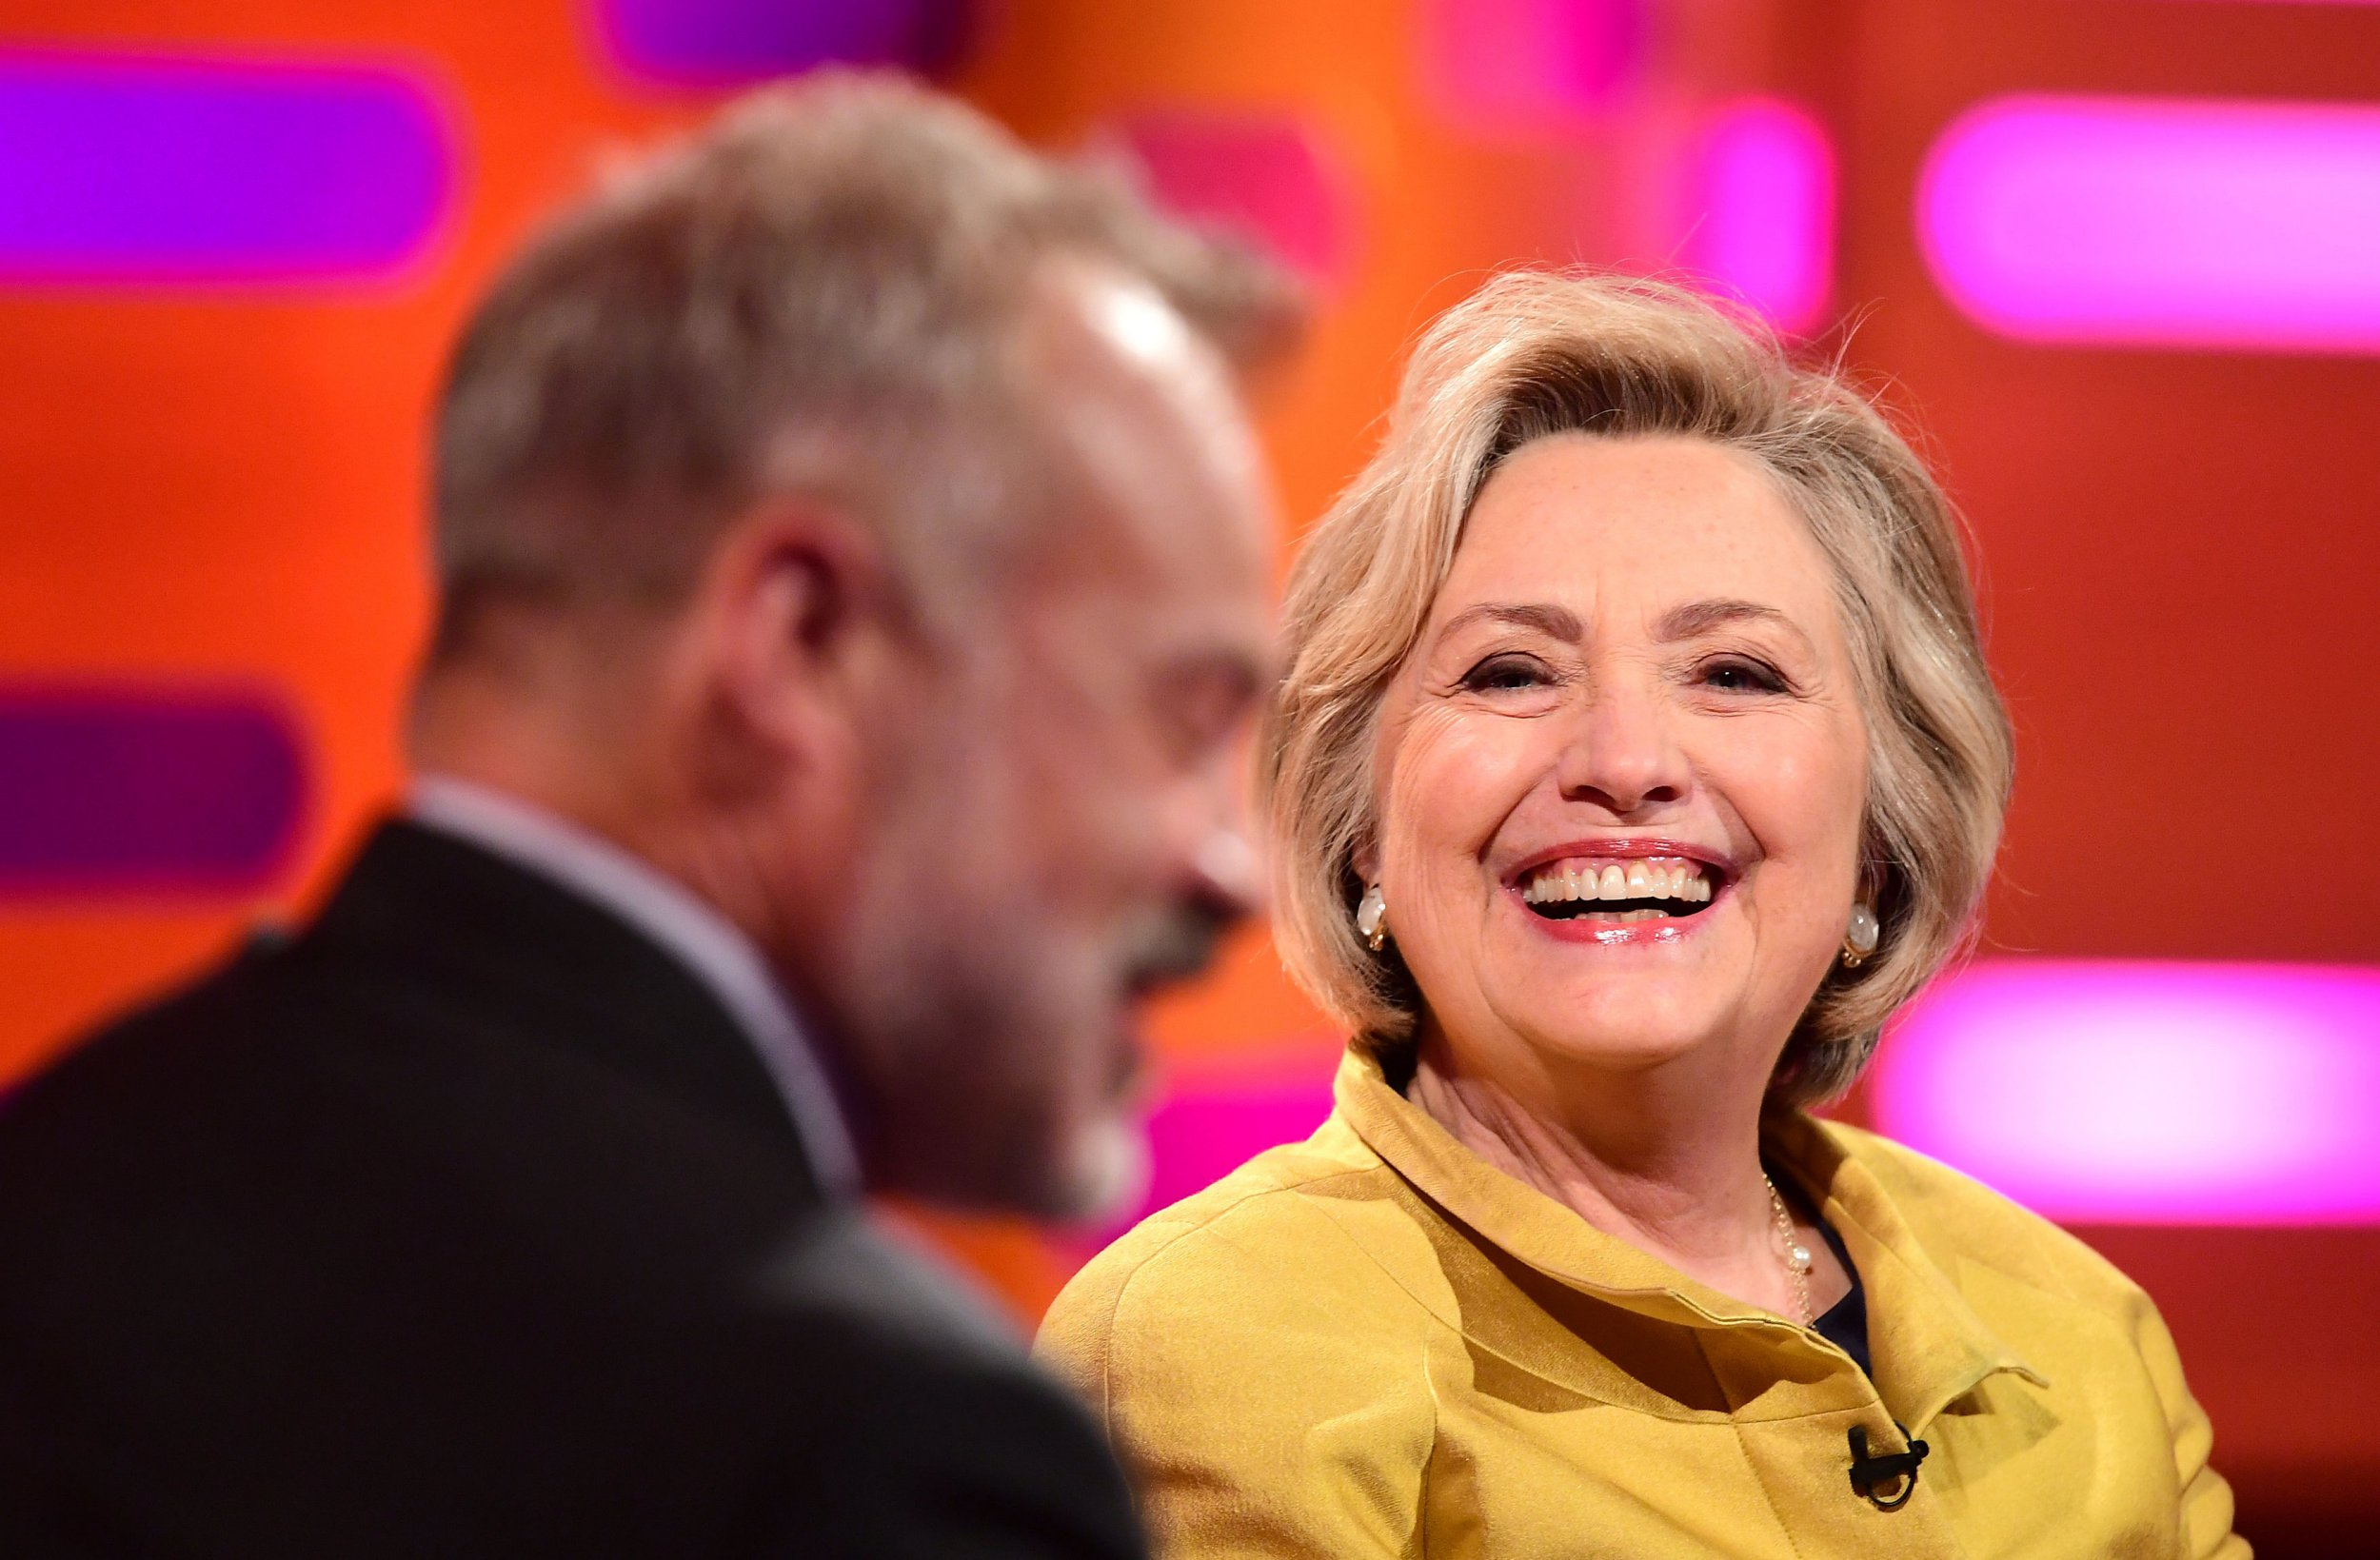 Who is on Graham Norton tonight? Hilary Clinton and Jack Whitehall among the guests